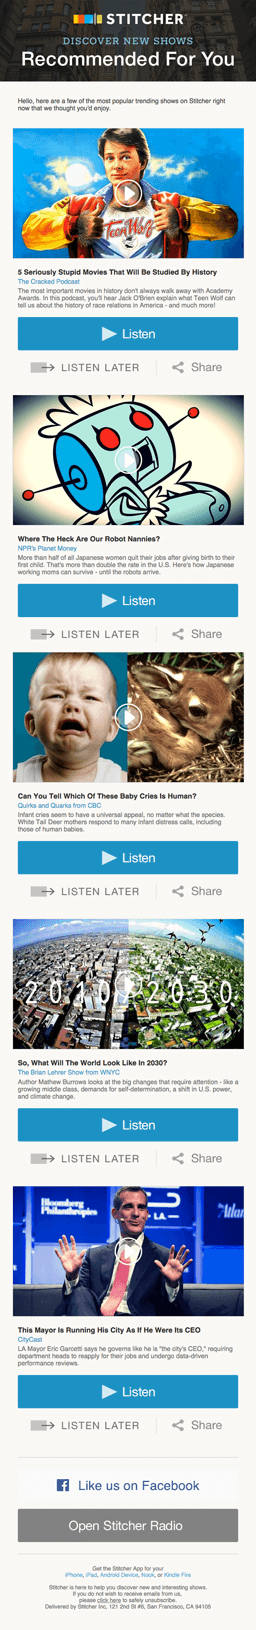 stitcher-email-example?noresize